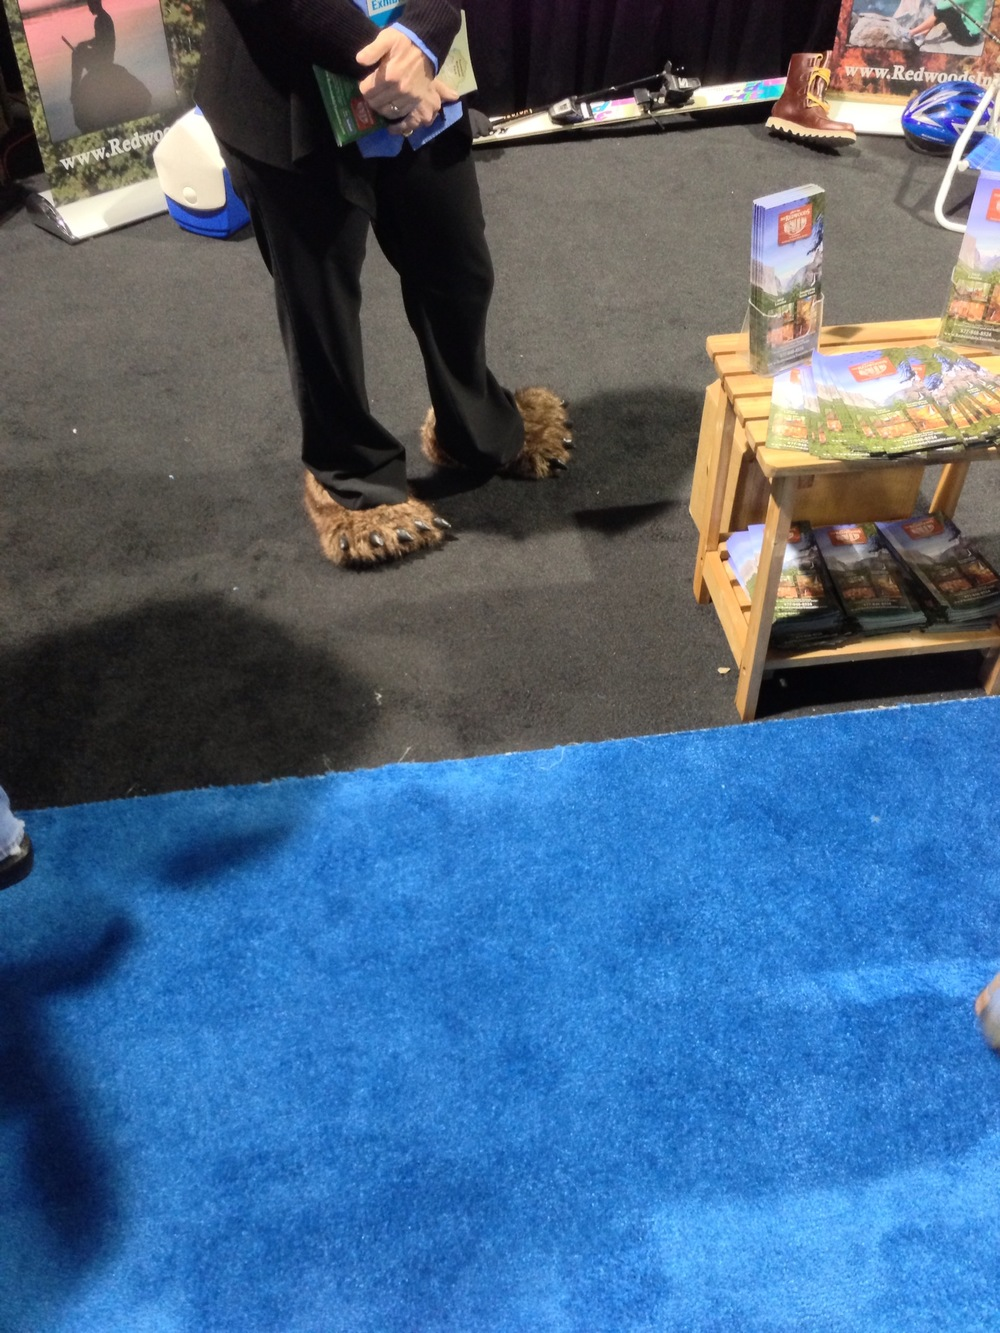 A woman from Yosemite tourism was sporting bear slippers. This is one of the things that had me sold on a Yosemite trip.